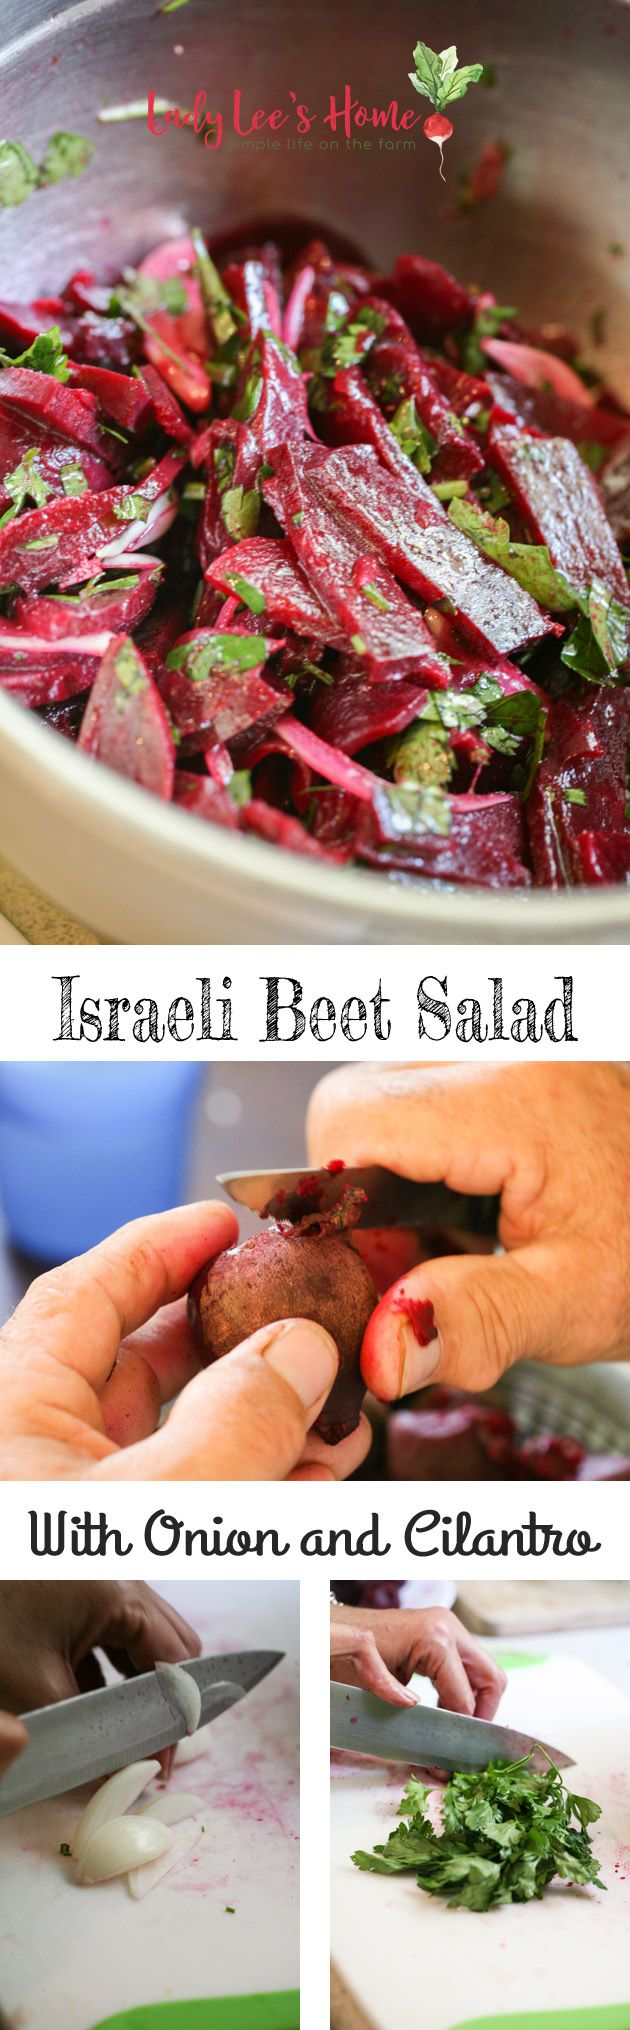 Beet salad with onion and cilantro.  Less onion.